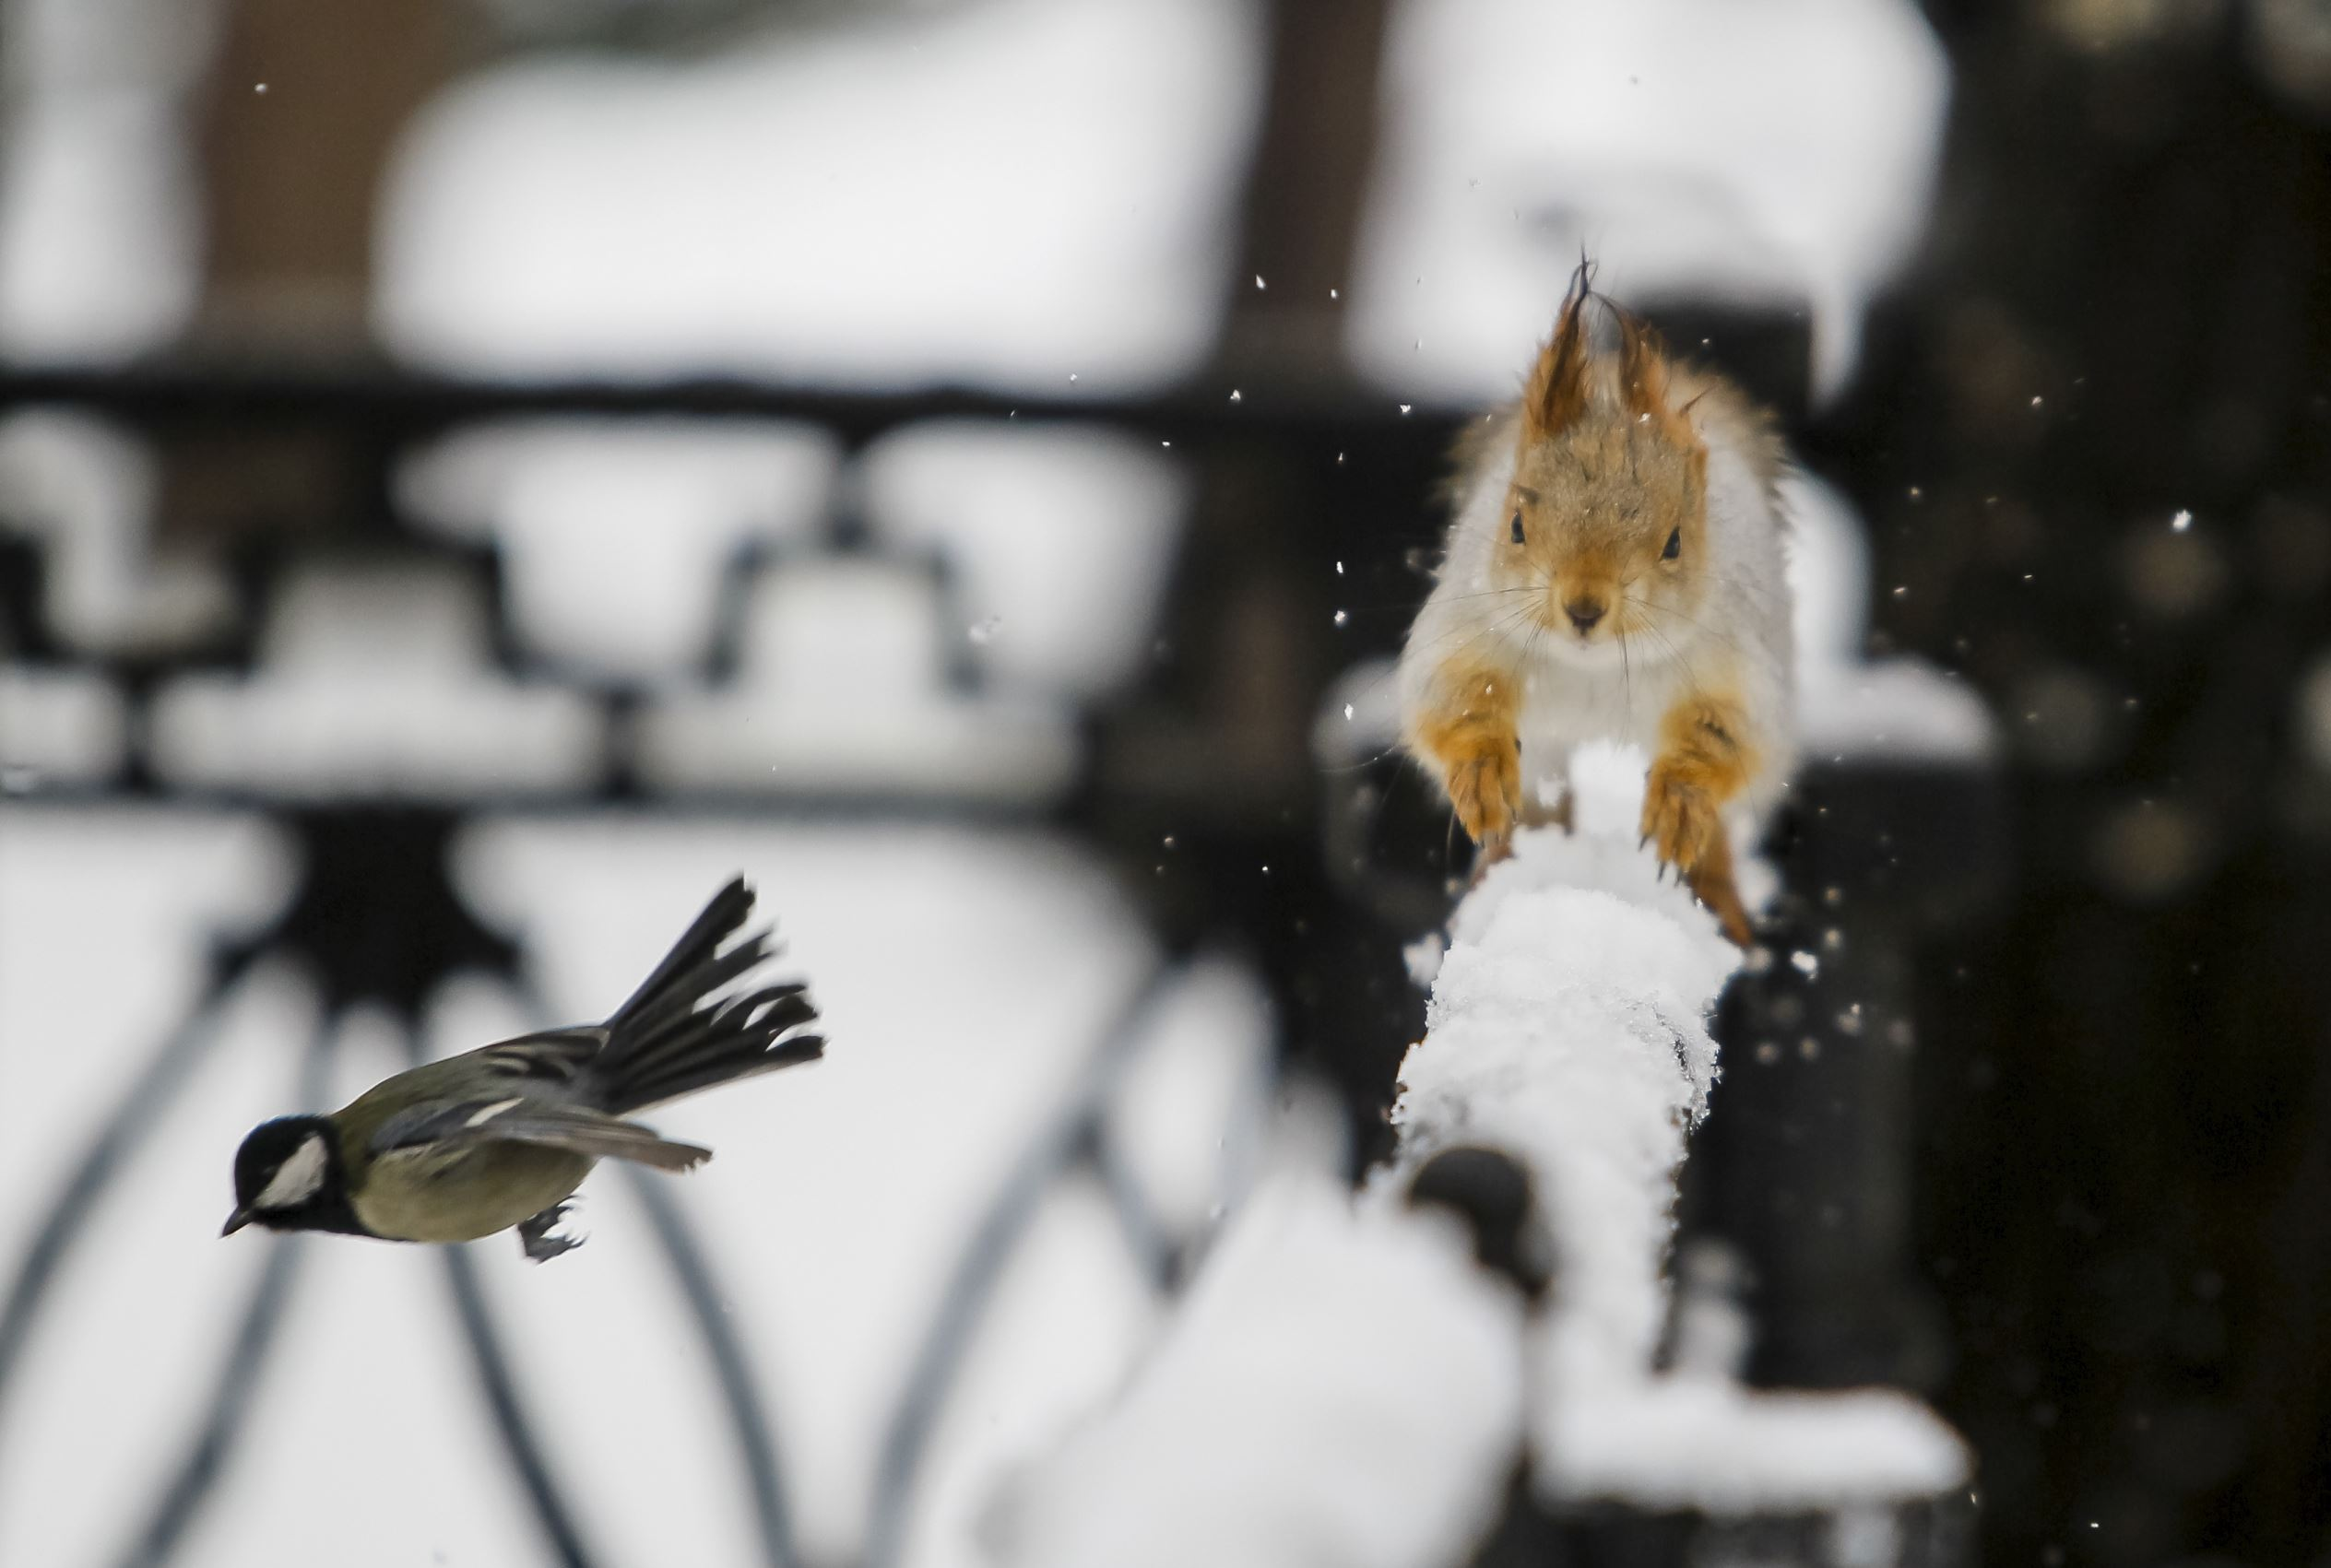 Слайд 65 из 67: A tomtit bird flies past a squirrel running on a fence after a snowfall in a park in Almaty, Kazakhstan, January 12, 2016.